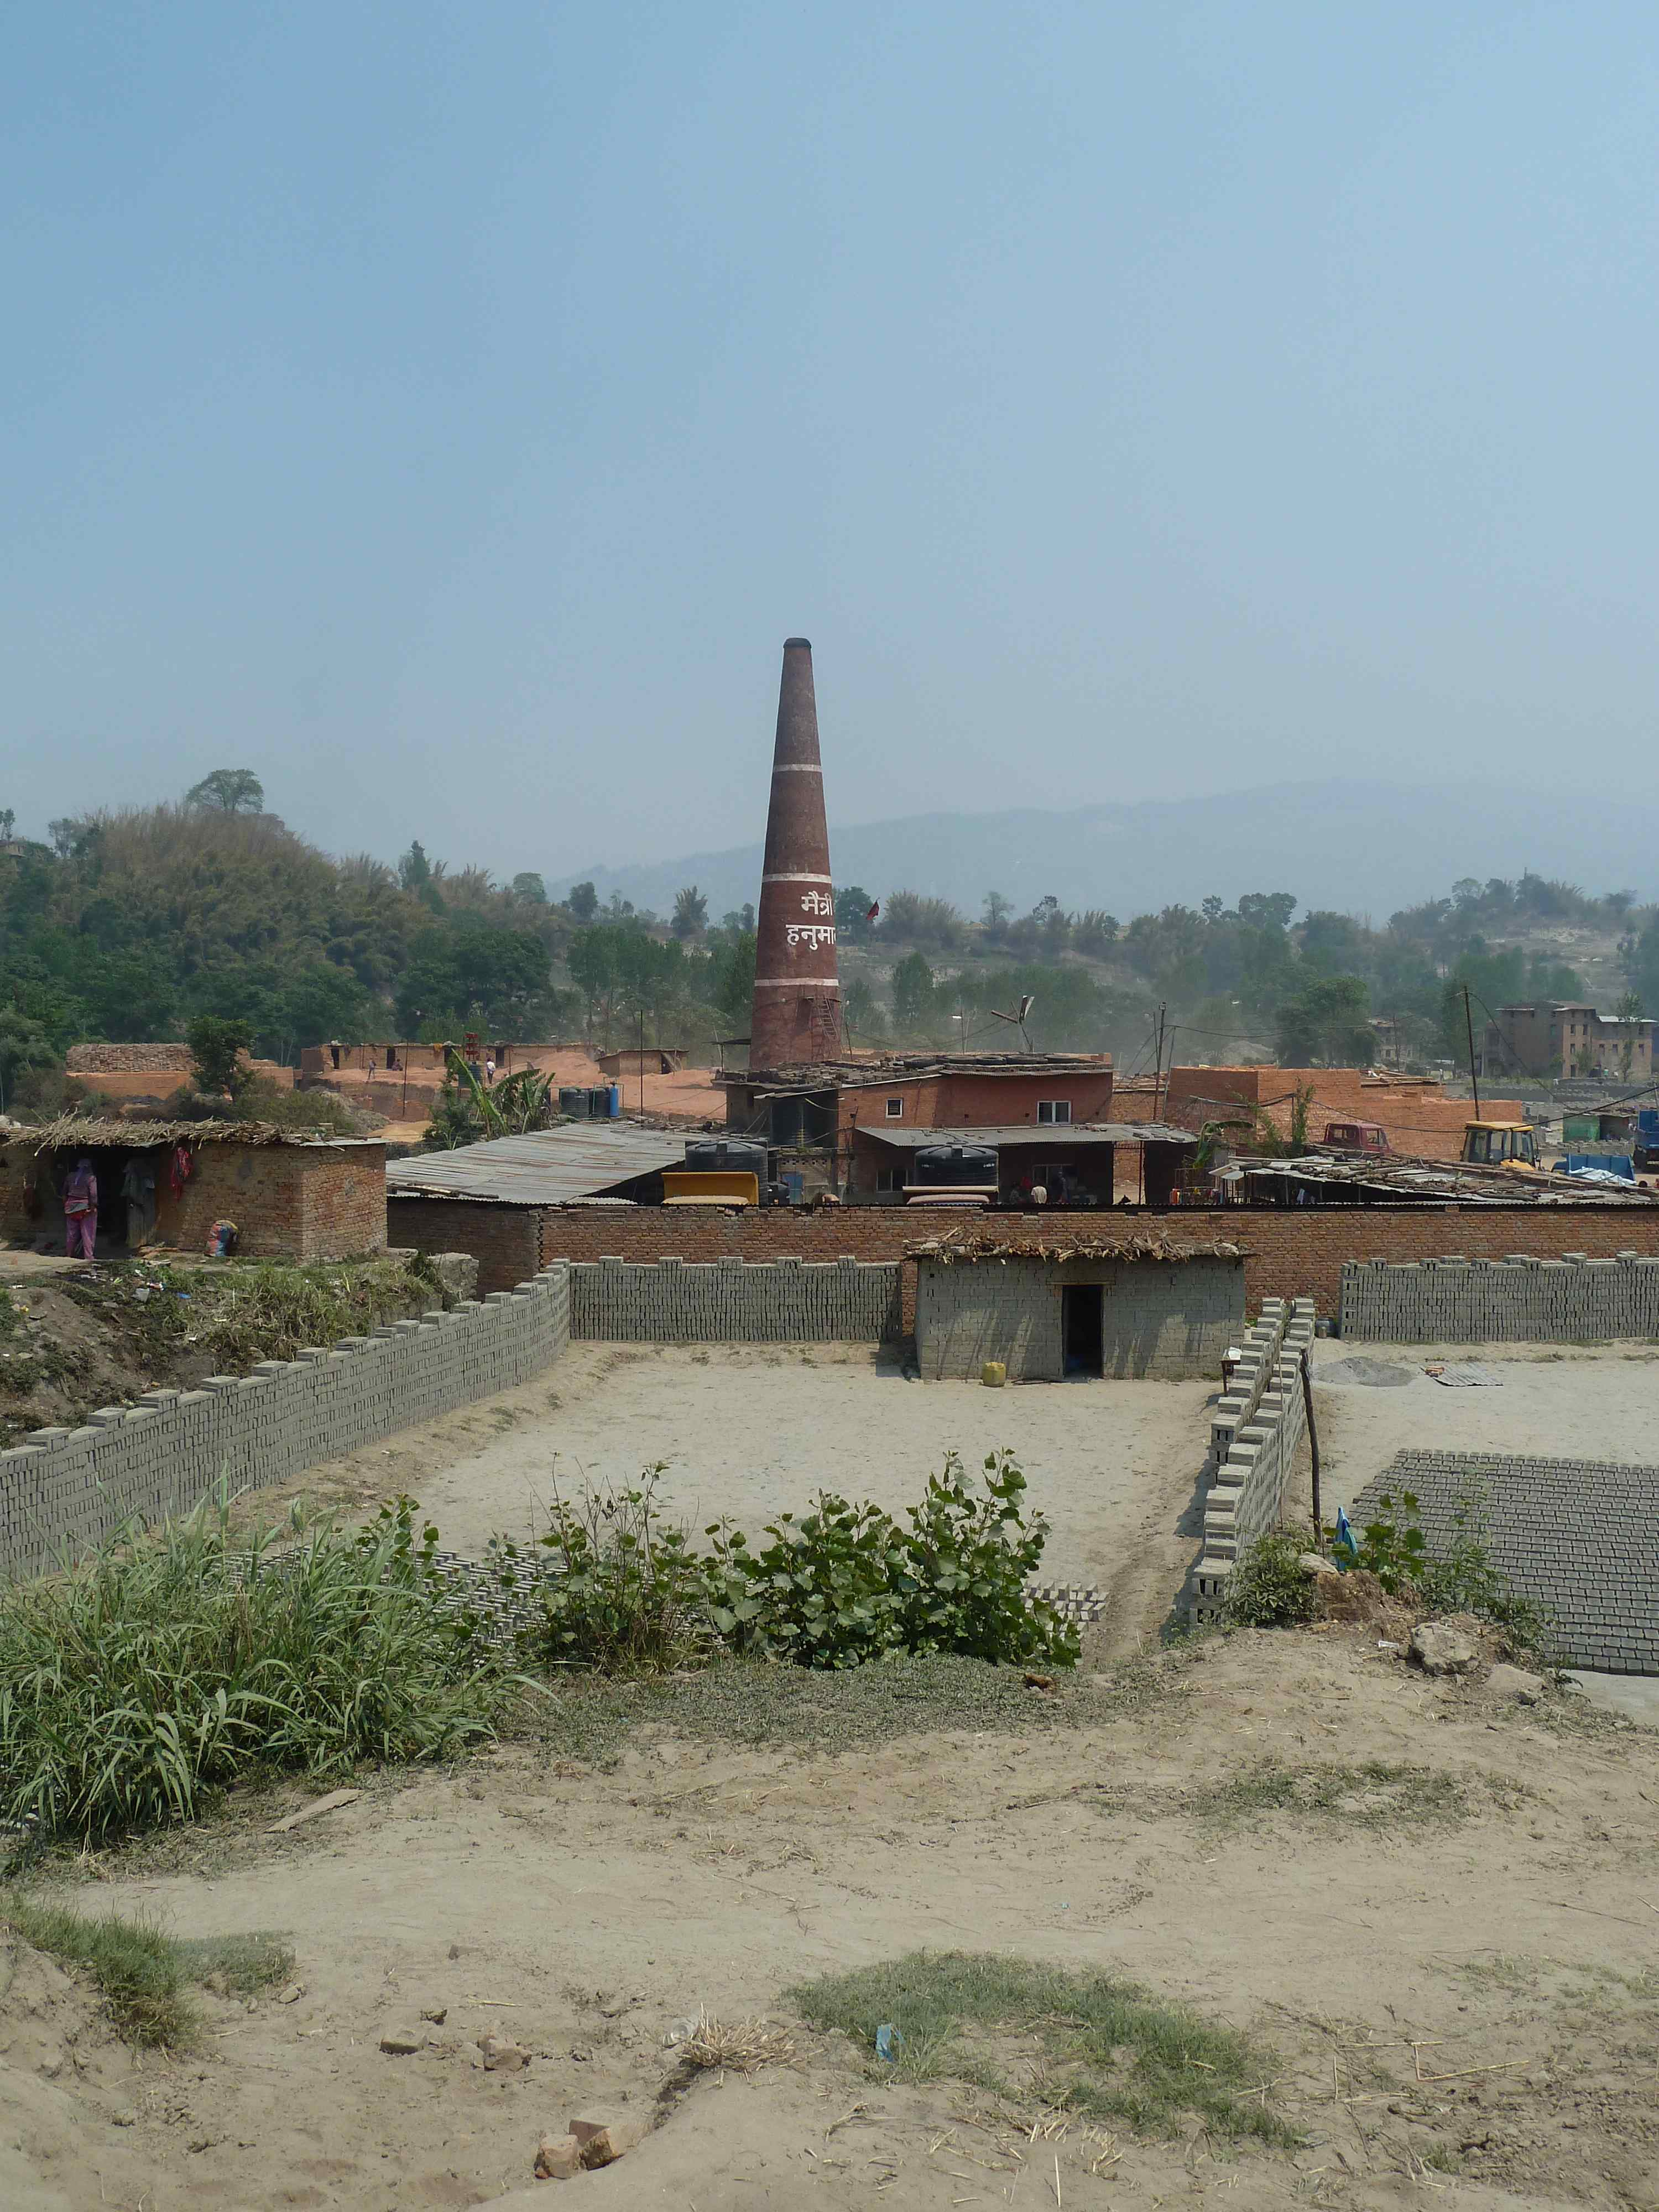 Brick kiln in the Kathmandu Valley. Source: Antenna (2017)